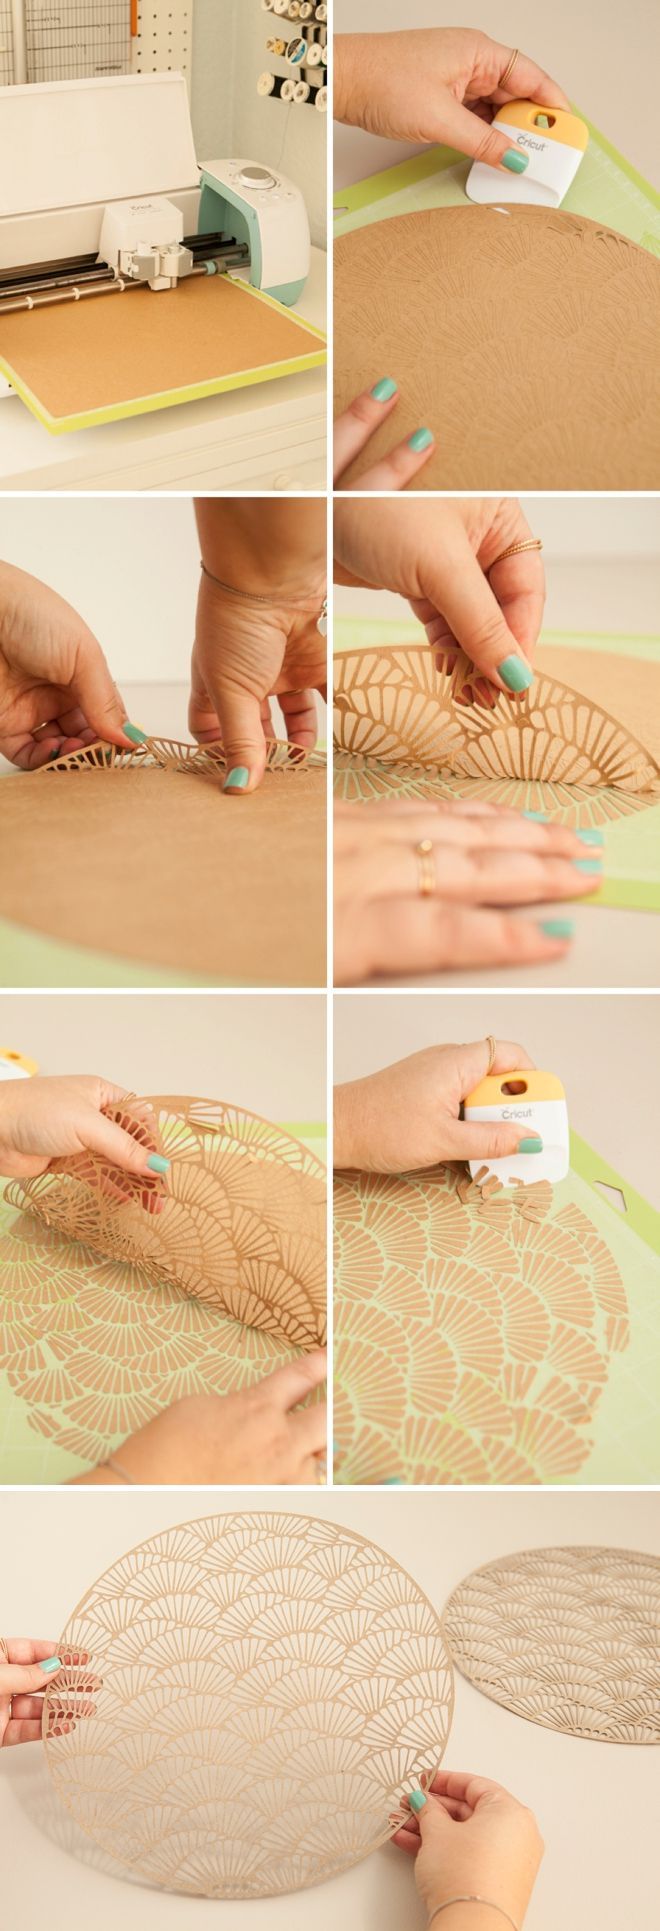 Use your Cricut Explore to make this darling scallop charger and napkin ring…